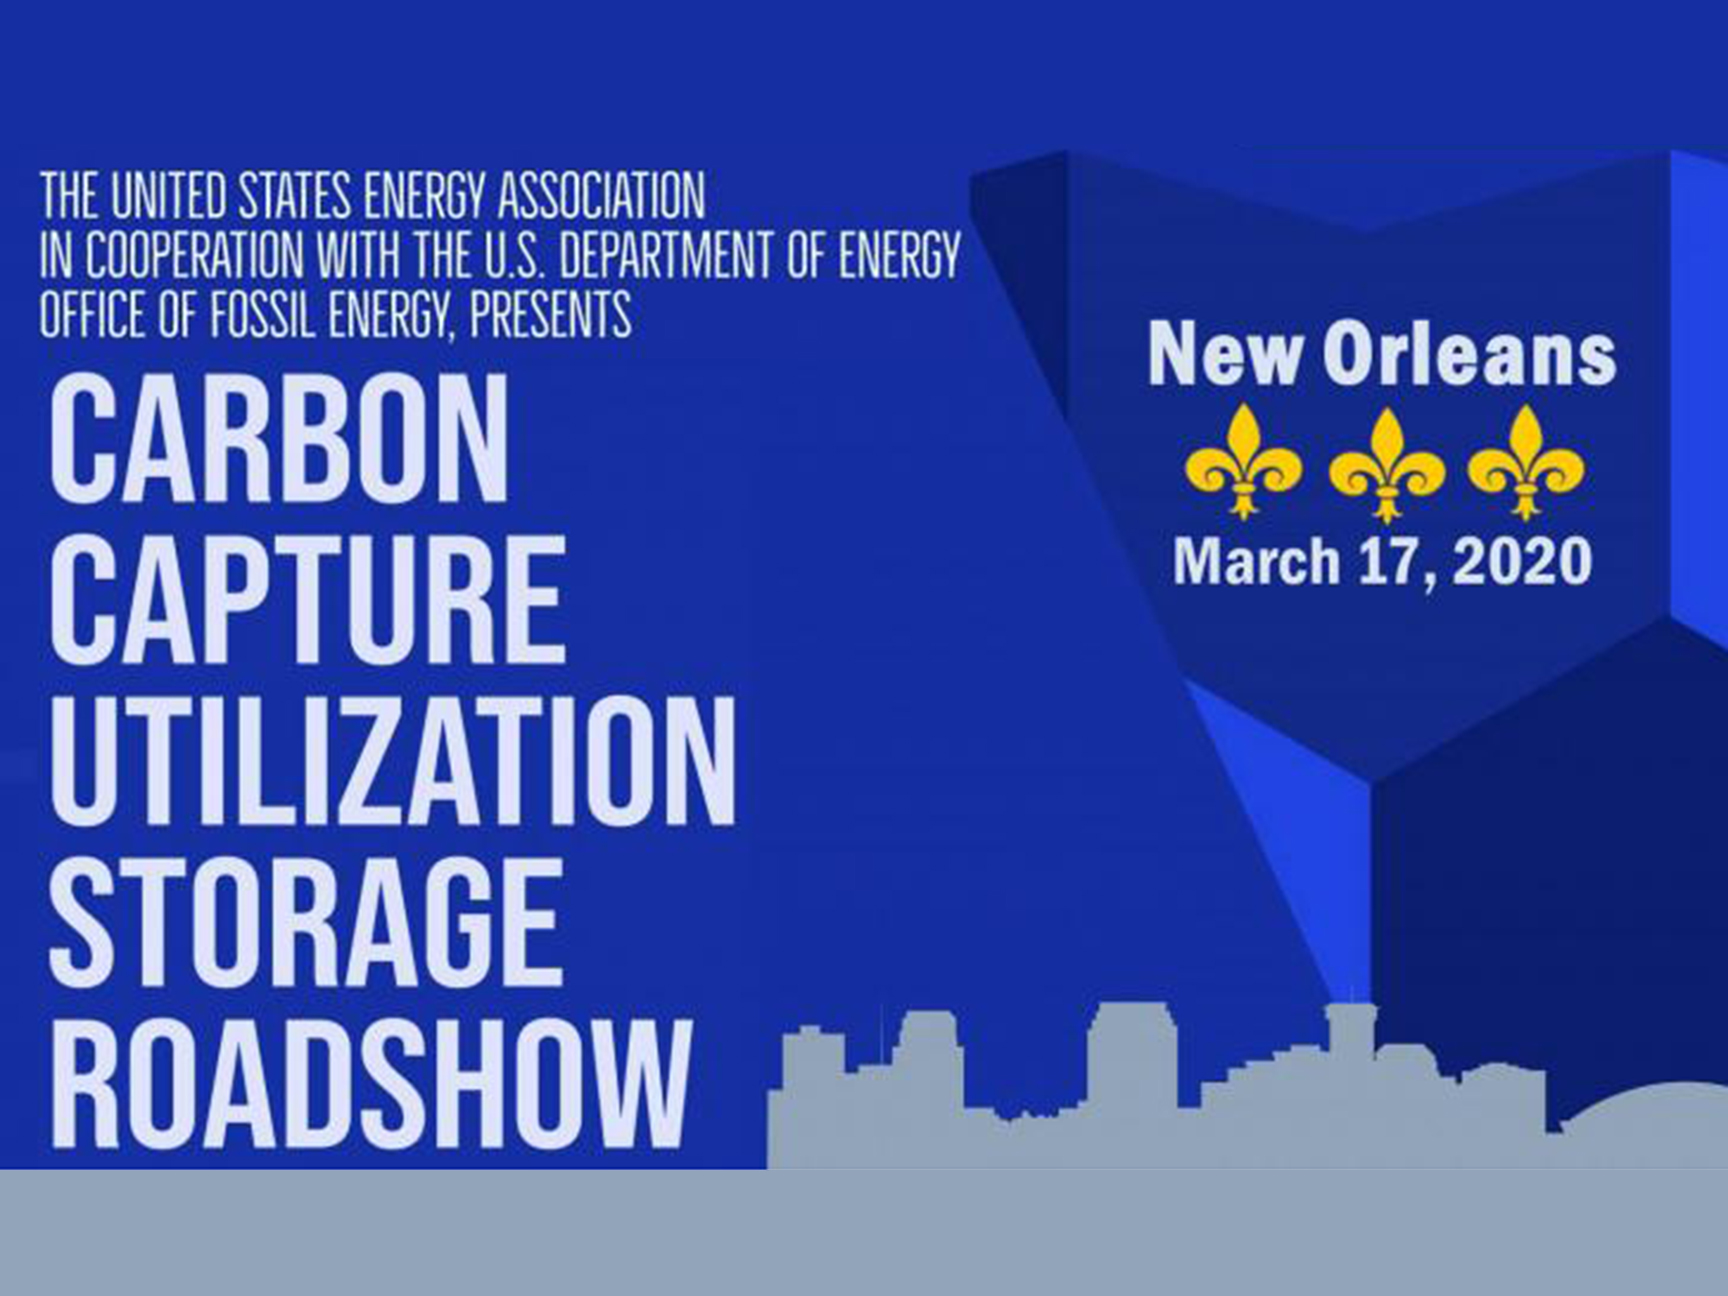 CCUS Roadshow in New Orleans, Louisiana Banner Image